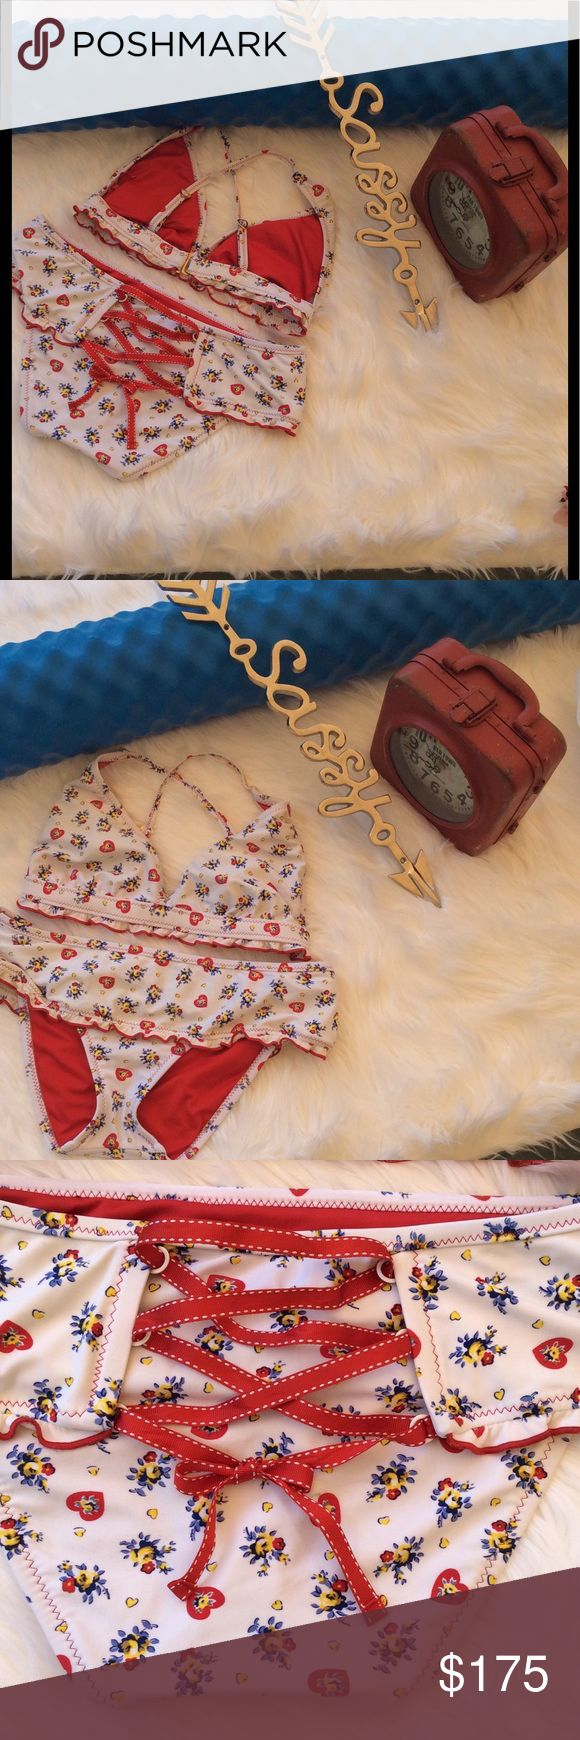 Betsy Johnson Bikini Hard to find!  Oh how I hate parting with this, but I can't reverse time. It deserves a great home.  This rose bikini is super special. Top is a D. It has removable padding, beautiful adjustable hook band around back and cris cross straps on back with gold hearts to adjust with. Bottoms are large. They are sweet!  Mini attached shirt for that perfect flair tease. A bright red ribbon ties down into a bow. Can be tightened or loosened.  Worn once. Sexy!!!  Mint condition…